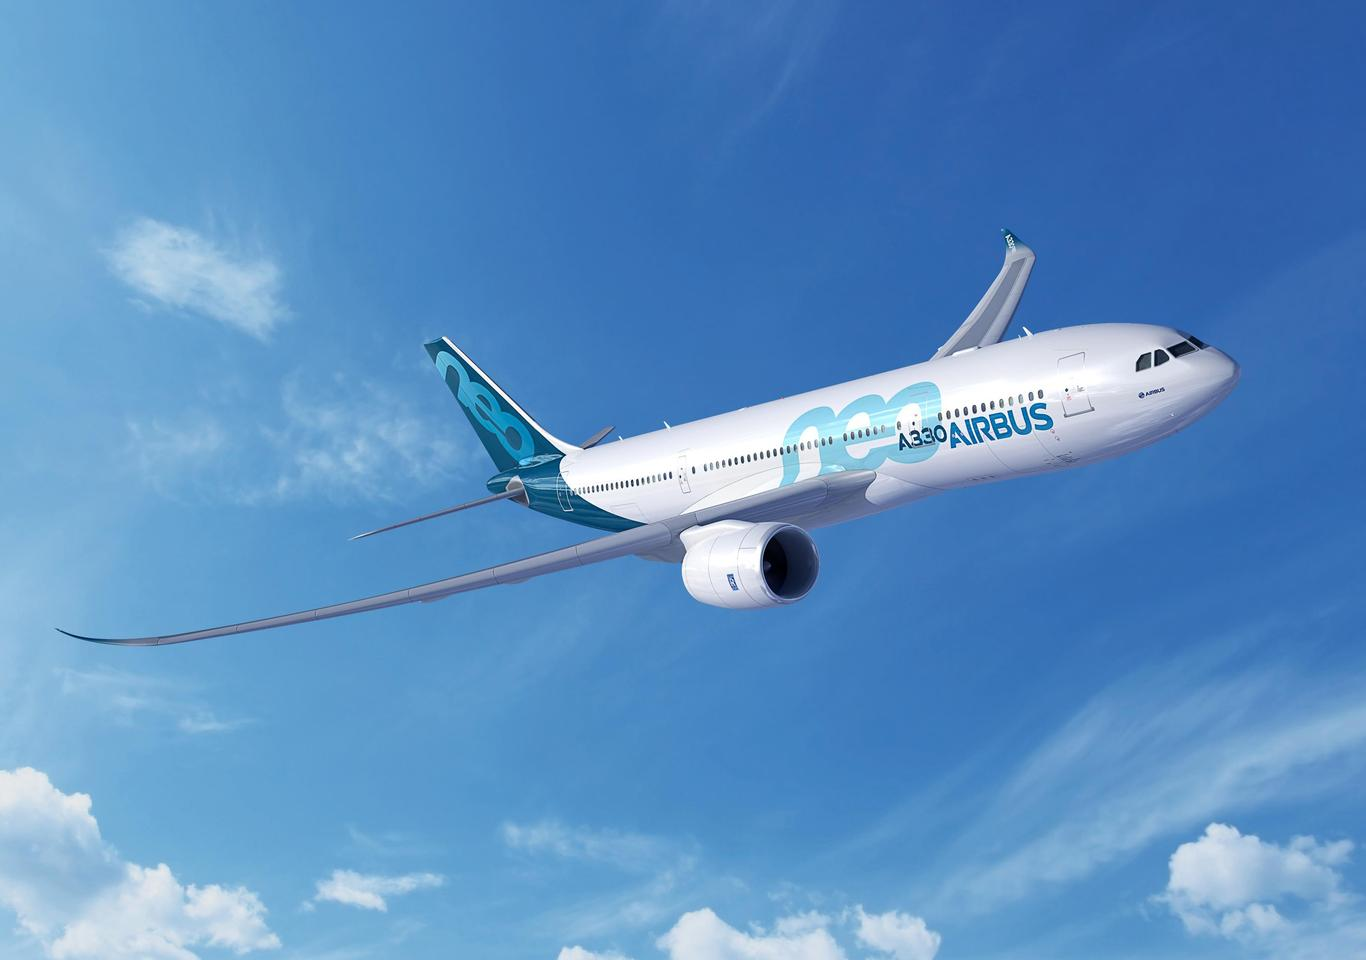 The A330neo uses the Rolls-Royce Trent 7000 engine